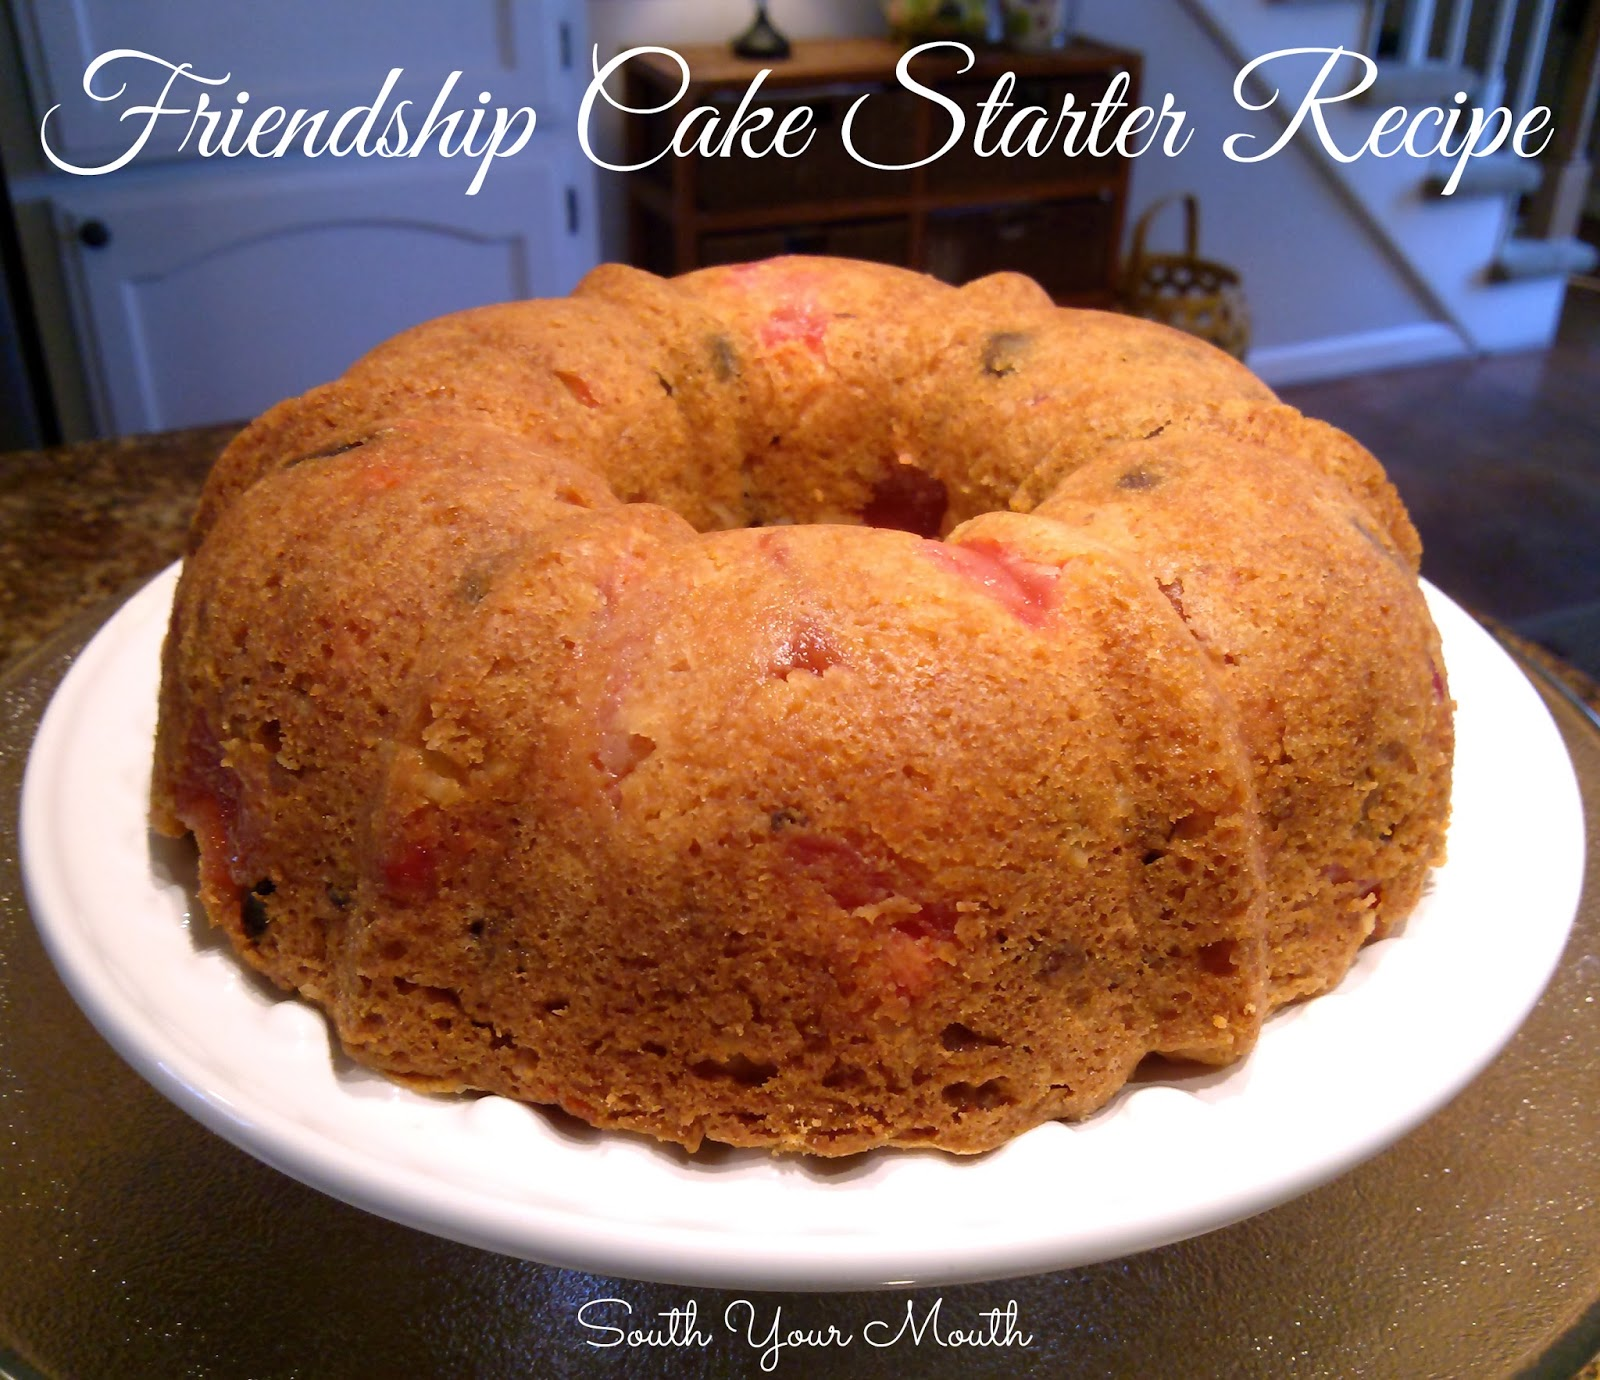 How To Make Friendship Cake Starter Recipe